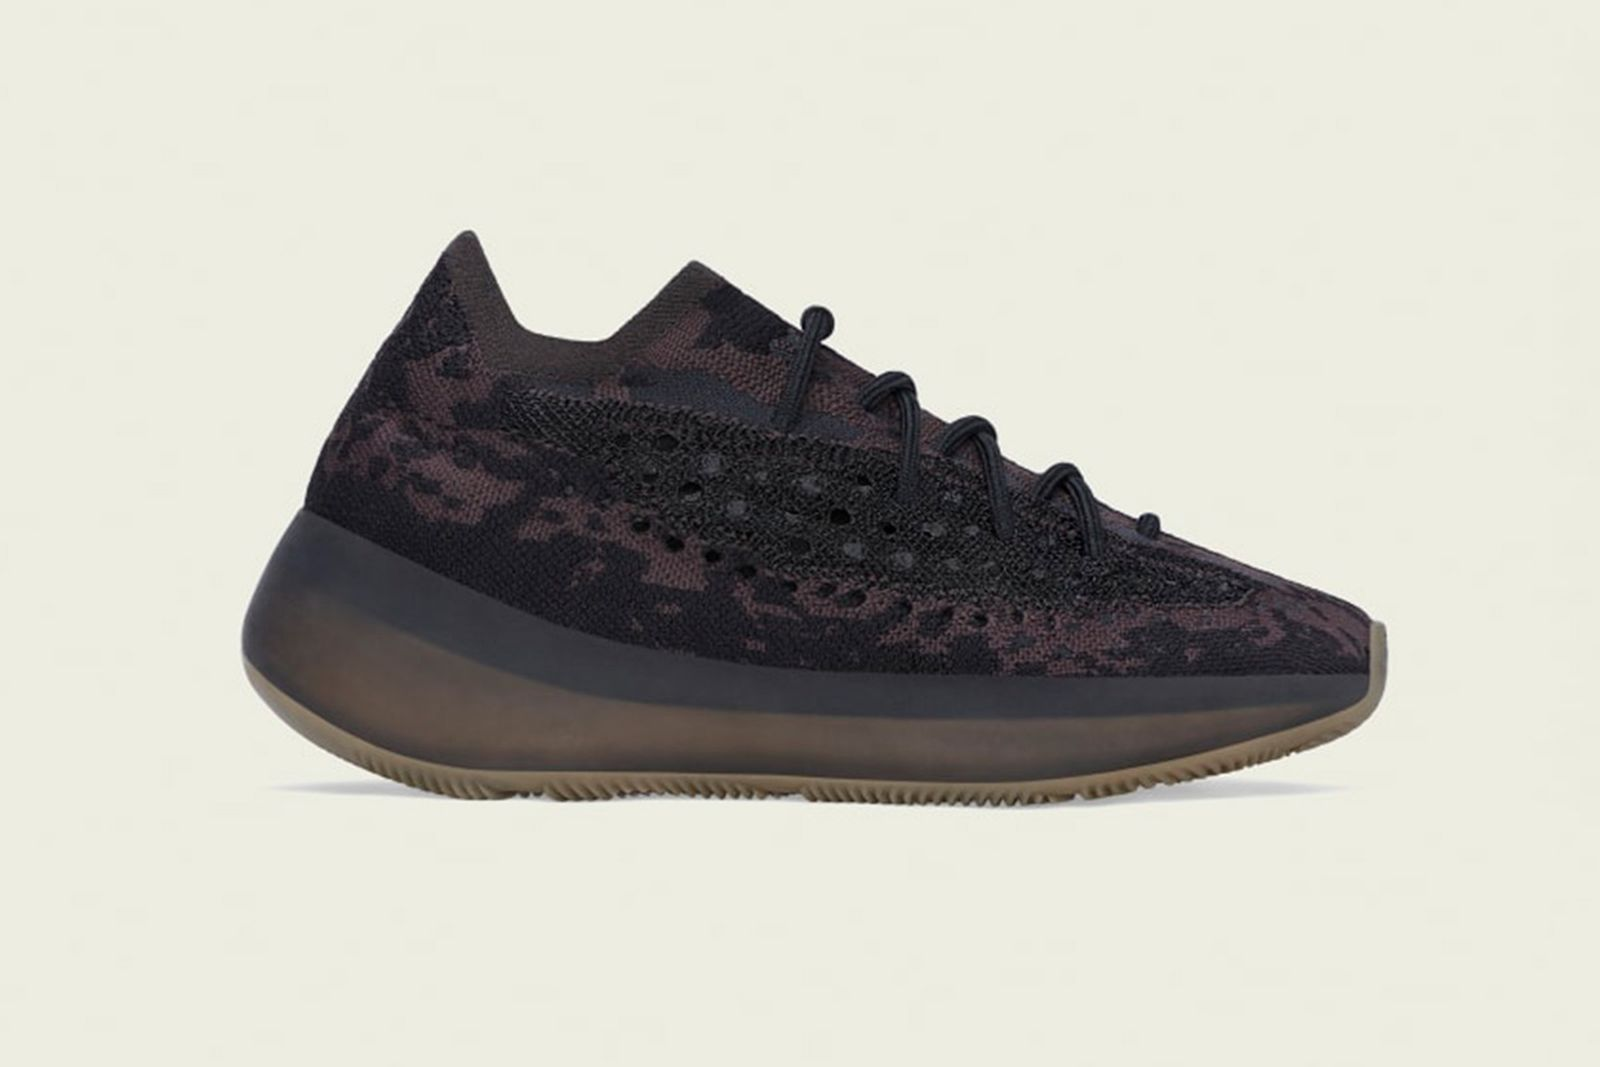 adidas-yeezy-boost-380-onyx-release-date-price-15